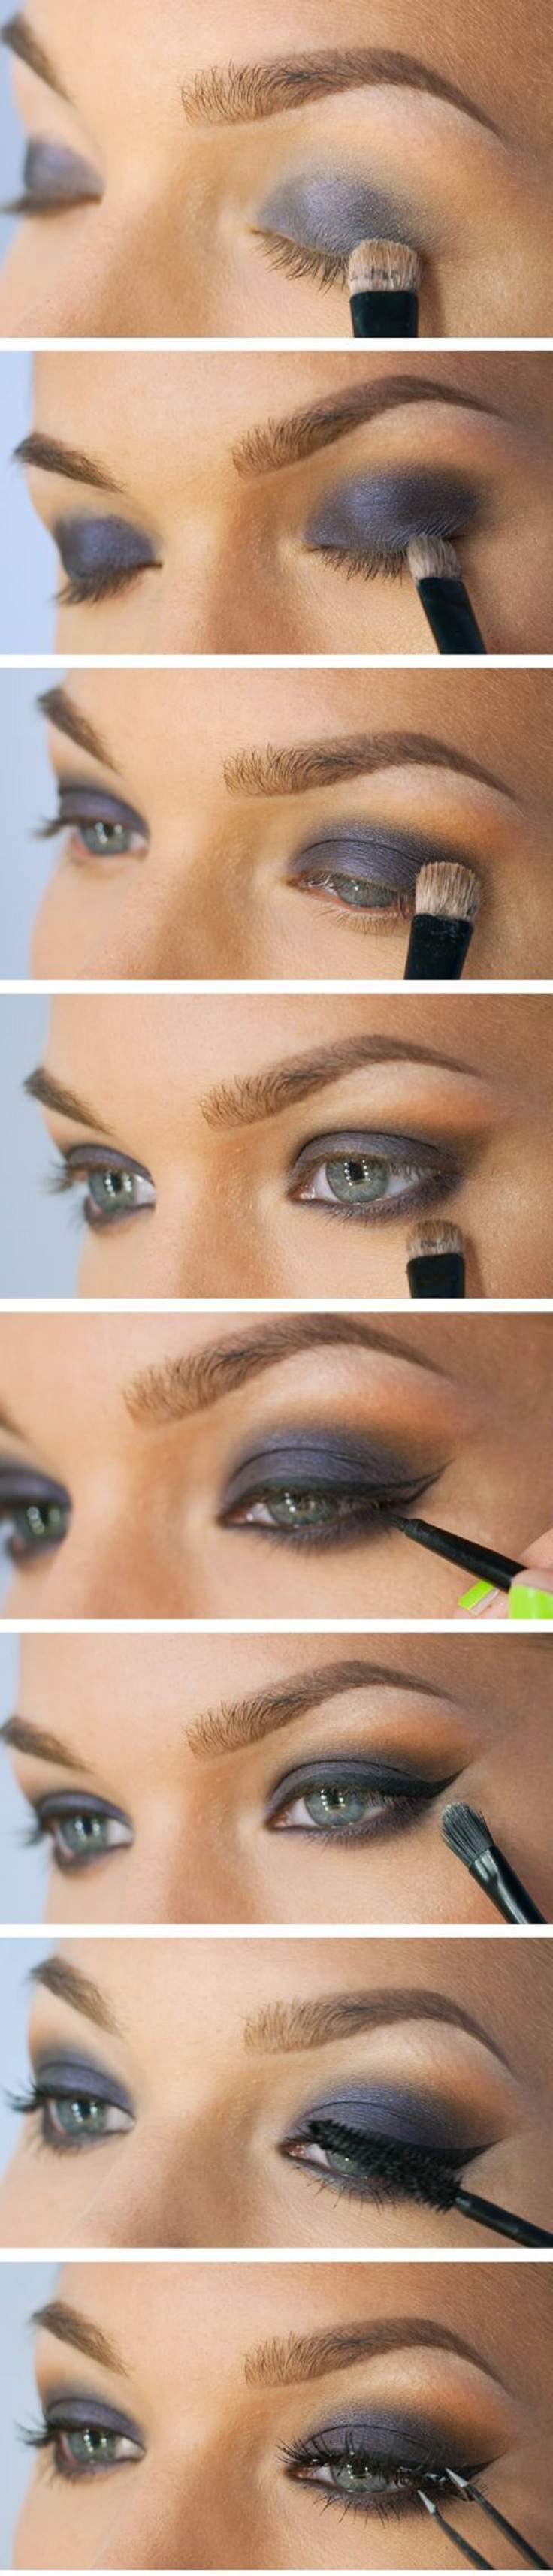 Makeup-Tutorial-for-Grey-Eye-Shadow